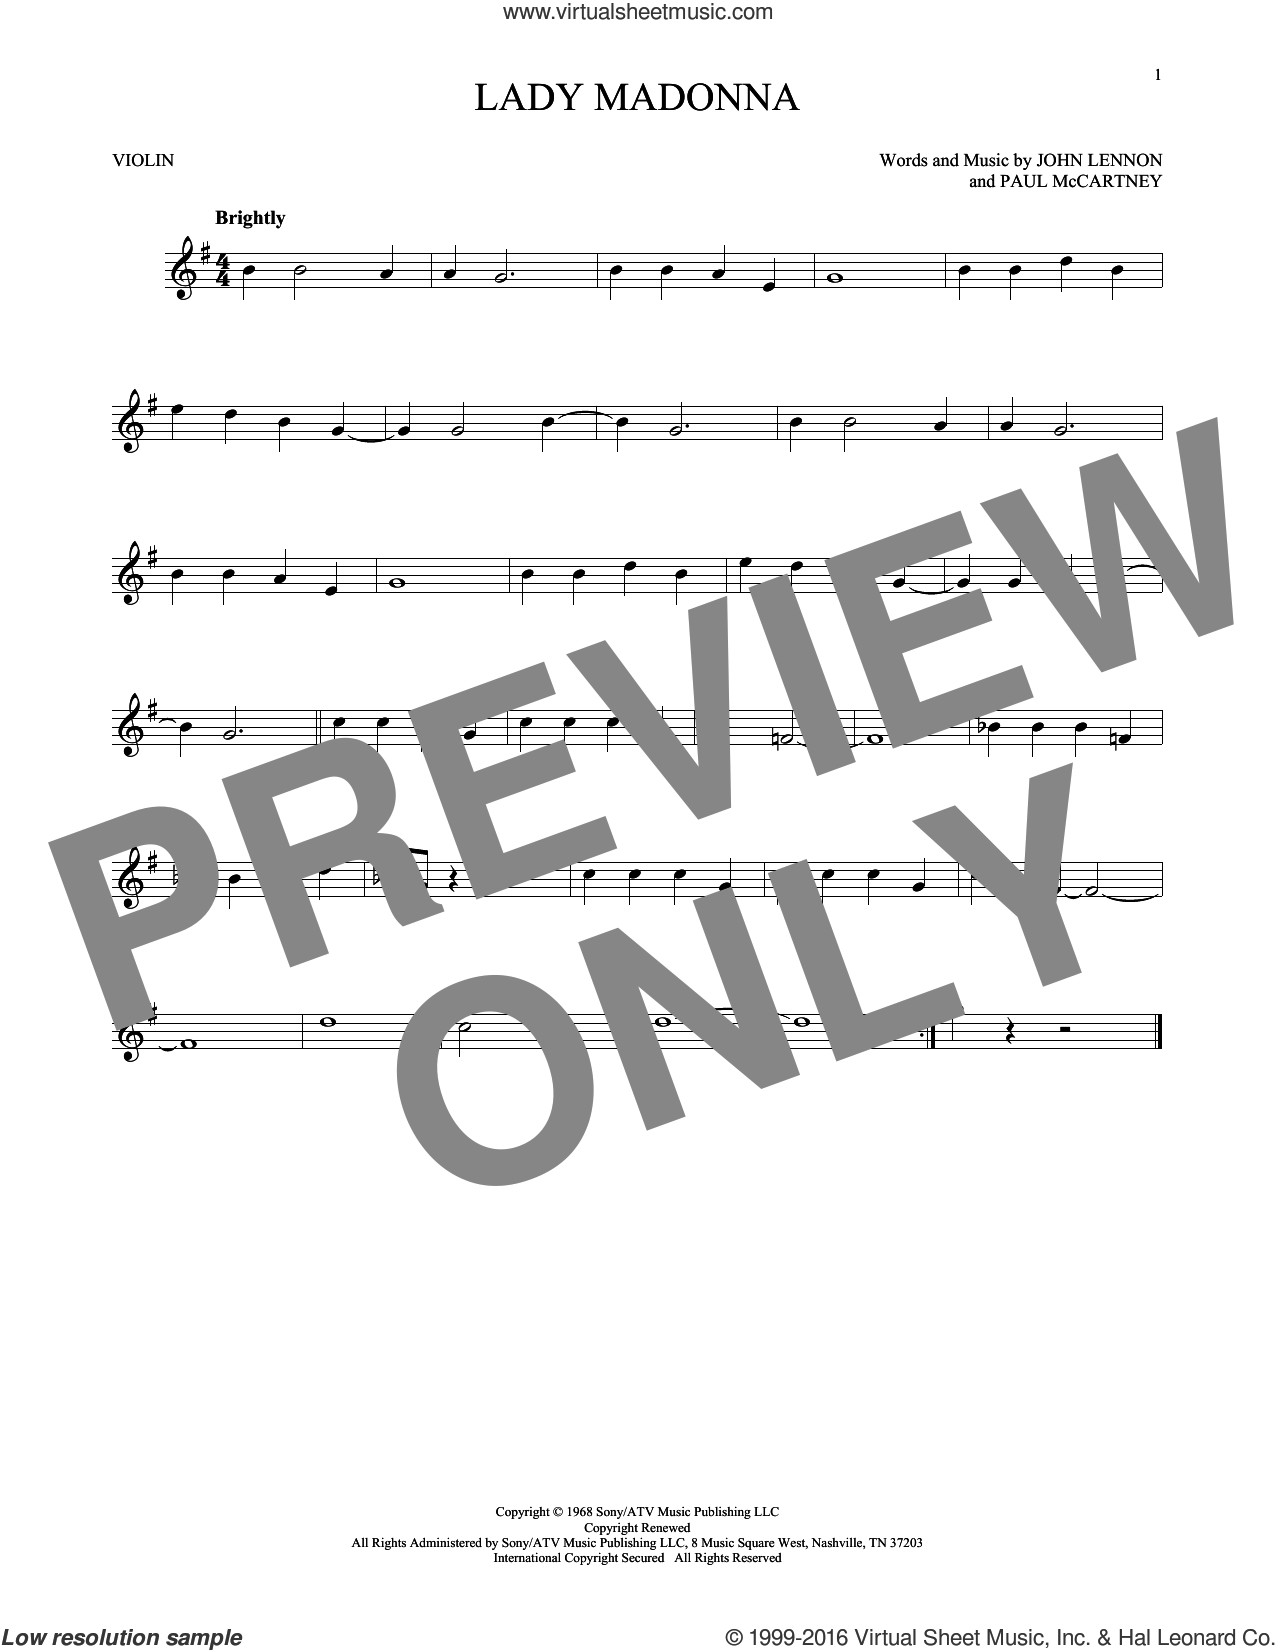 Lady Madonna sheet music for violin solo by The Beatles, John Lennon and Paul McCartney, intermediate skill level